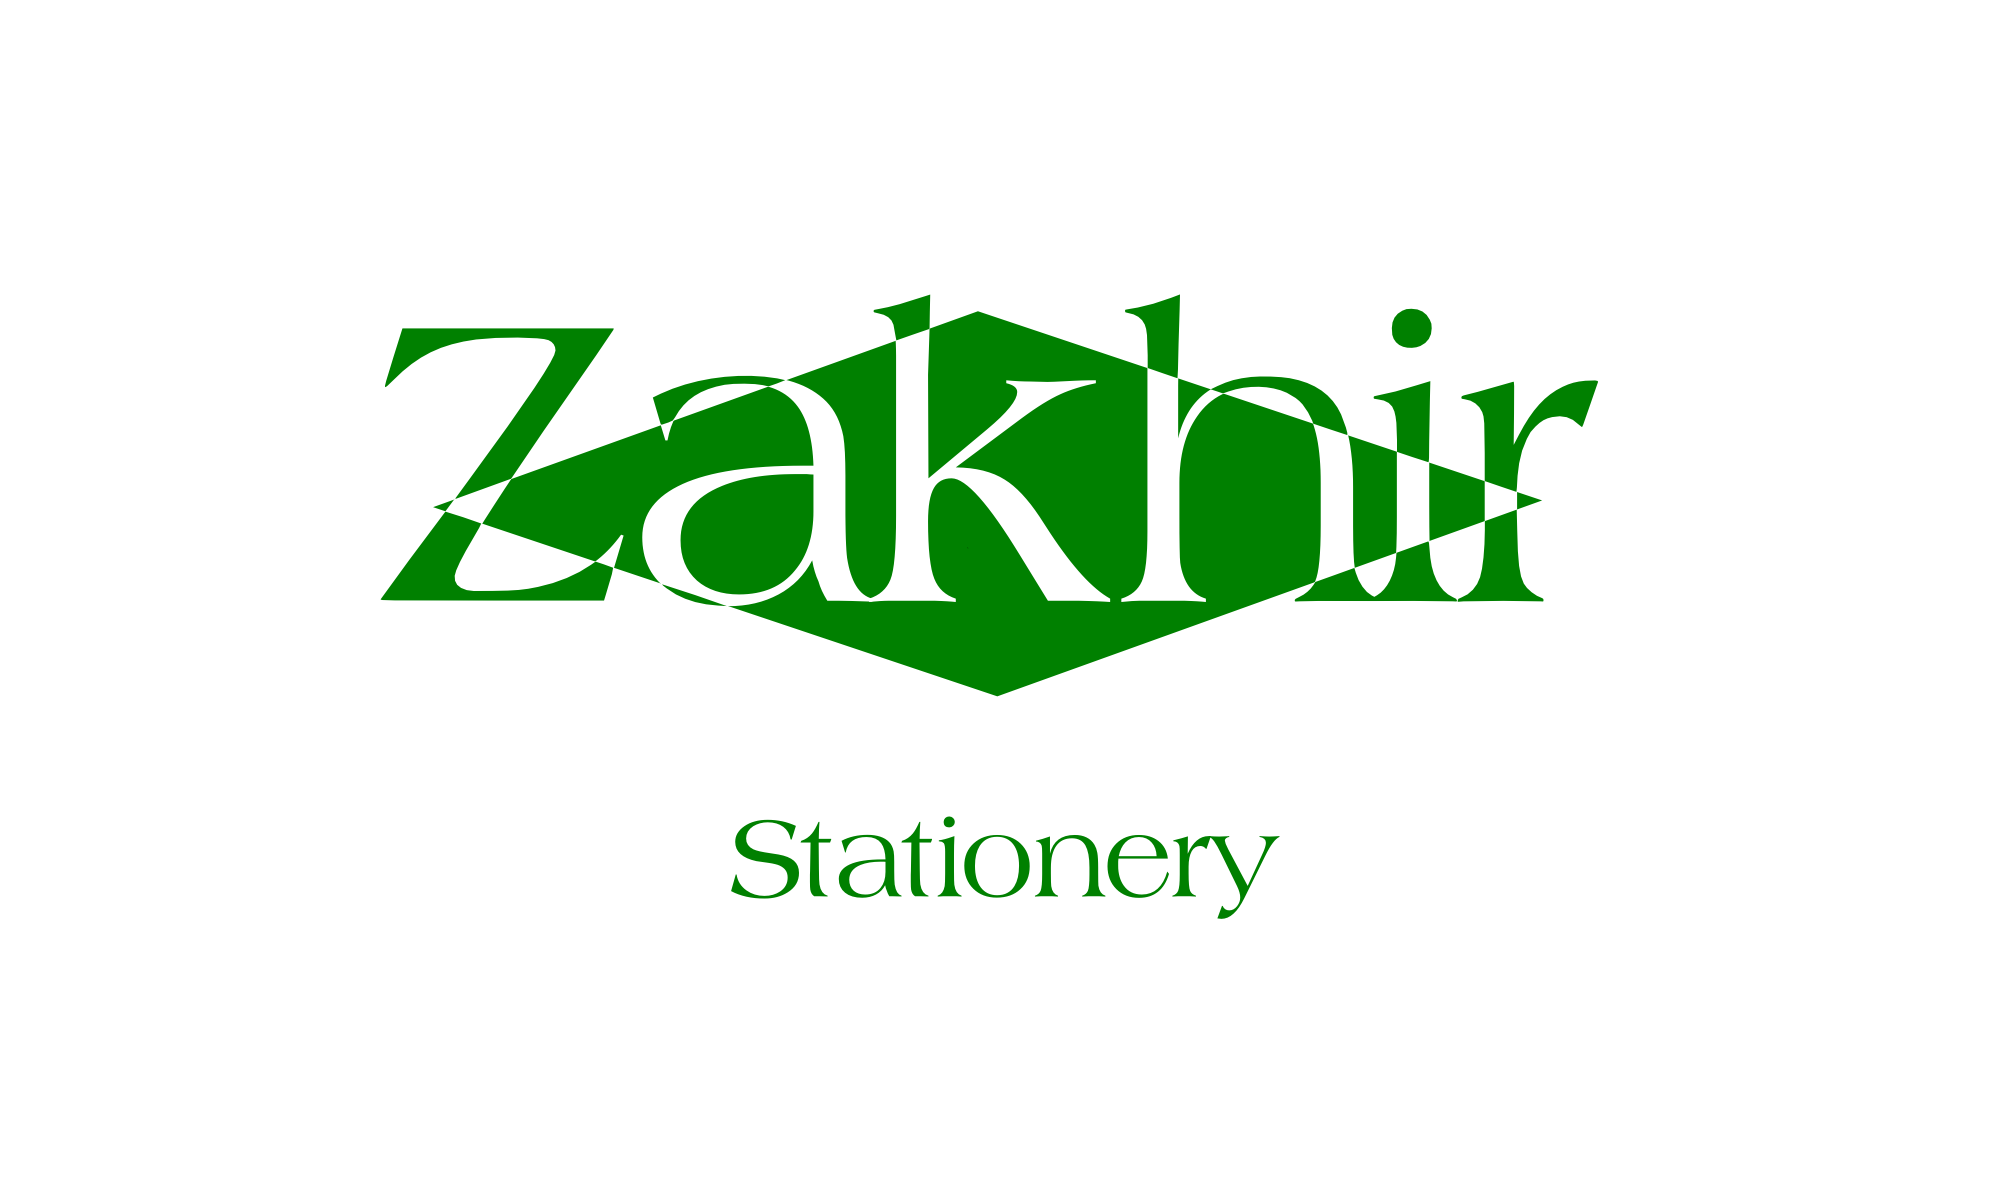 Logo Design by Gheburaseye - Entry No. 17 in the Logo Design Contest Zakhir Logo Design.